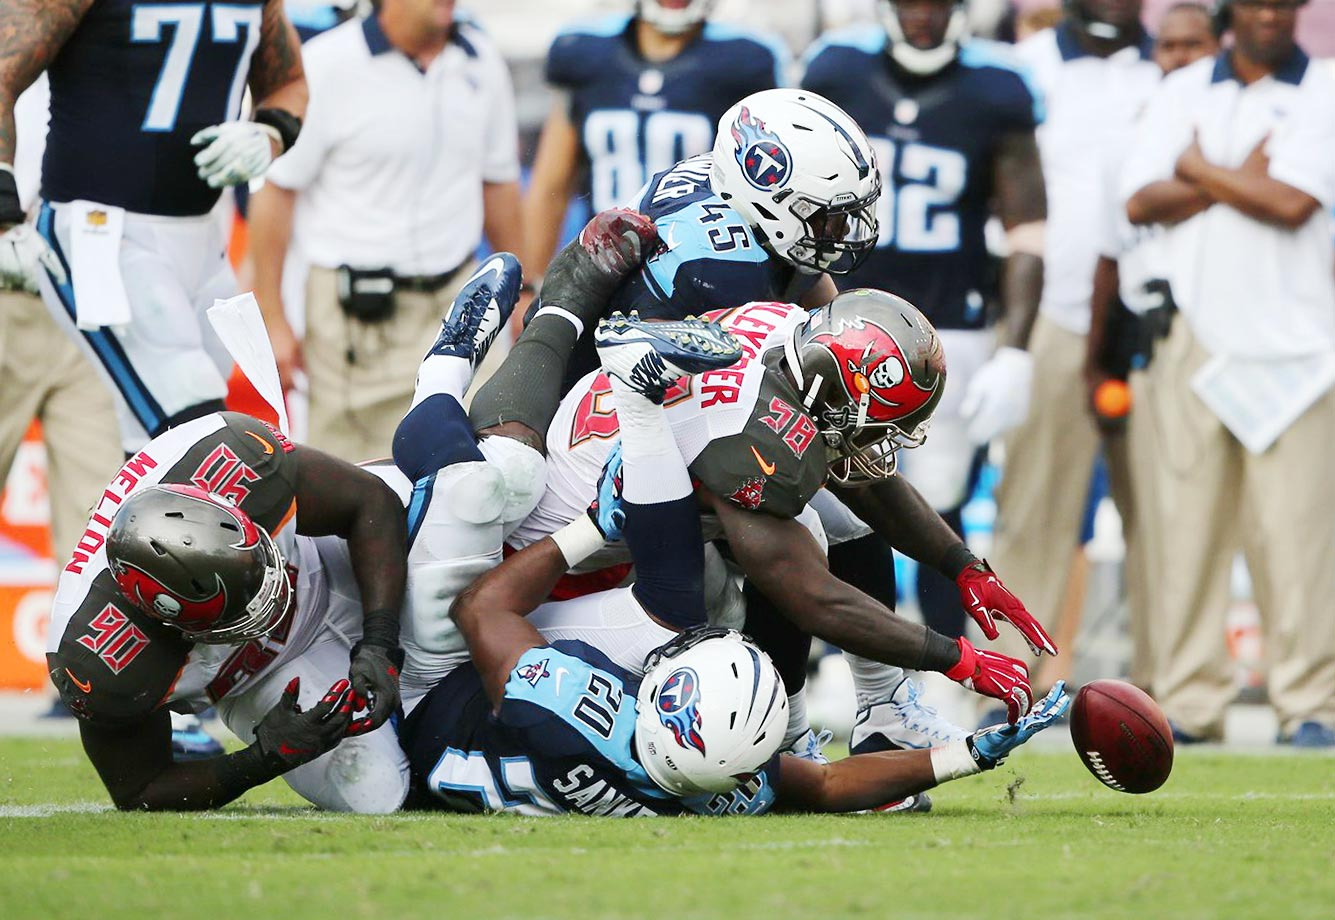 Bishop Sankey loses the ball against the Tampa Bay defense (Kwon Alexander, 58, and Jalston Fowler, 45).